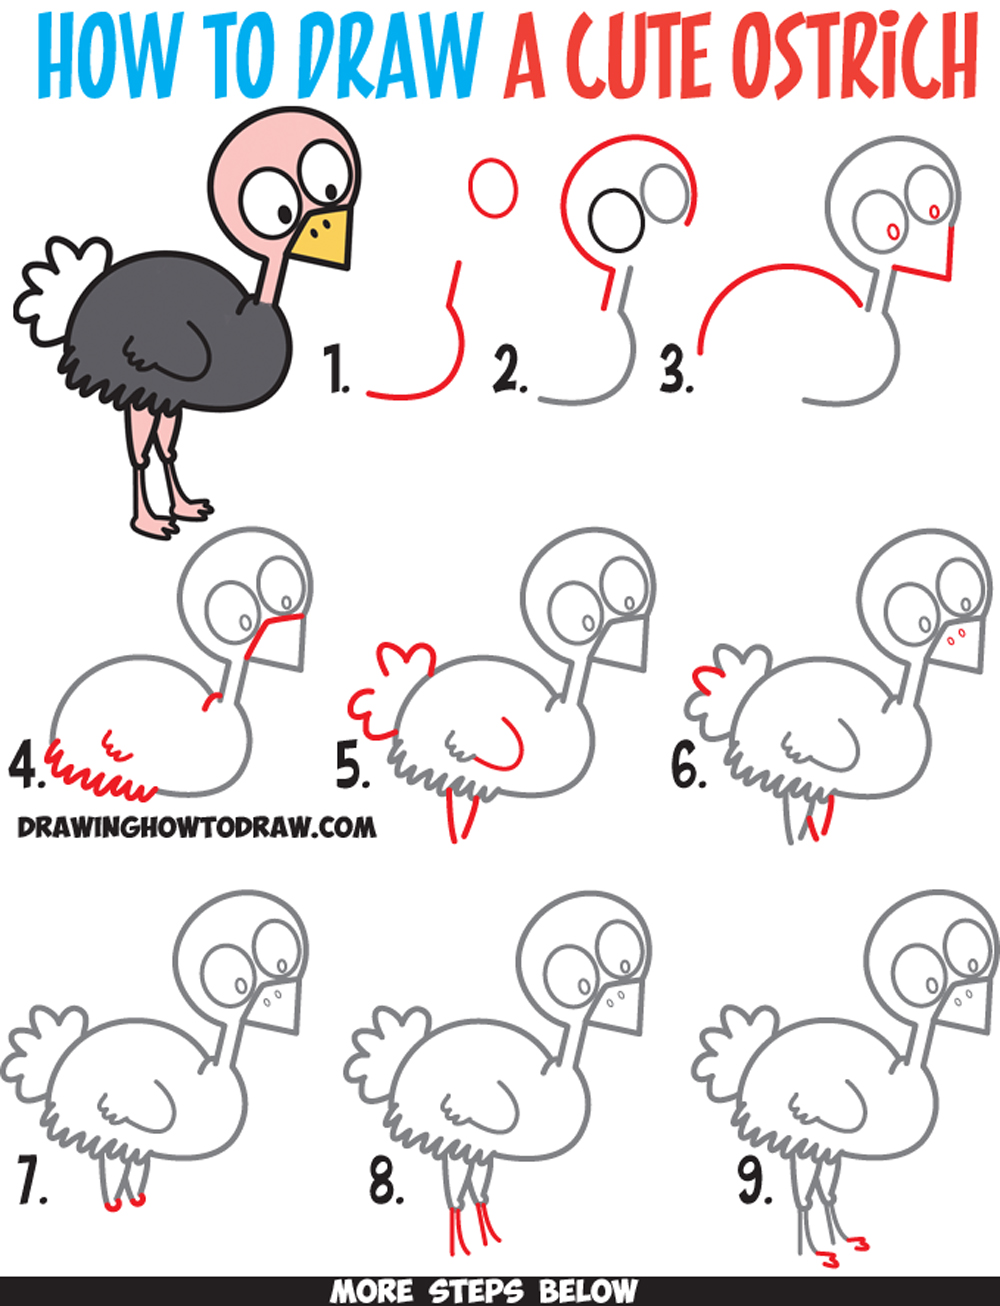 Learn How to Draw a Cute Cartoon Ostrich (Kawaii / Chibi) Easy Step by Step Drawing Tutorial for Kids & Beginners